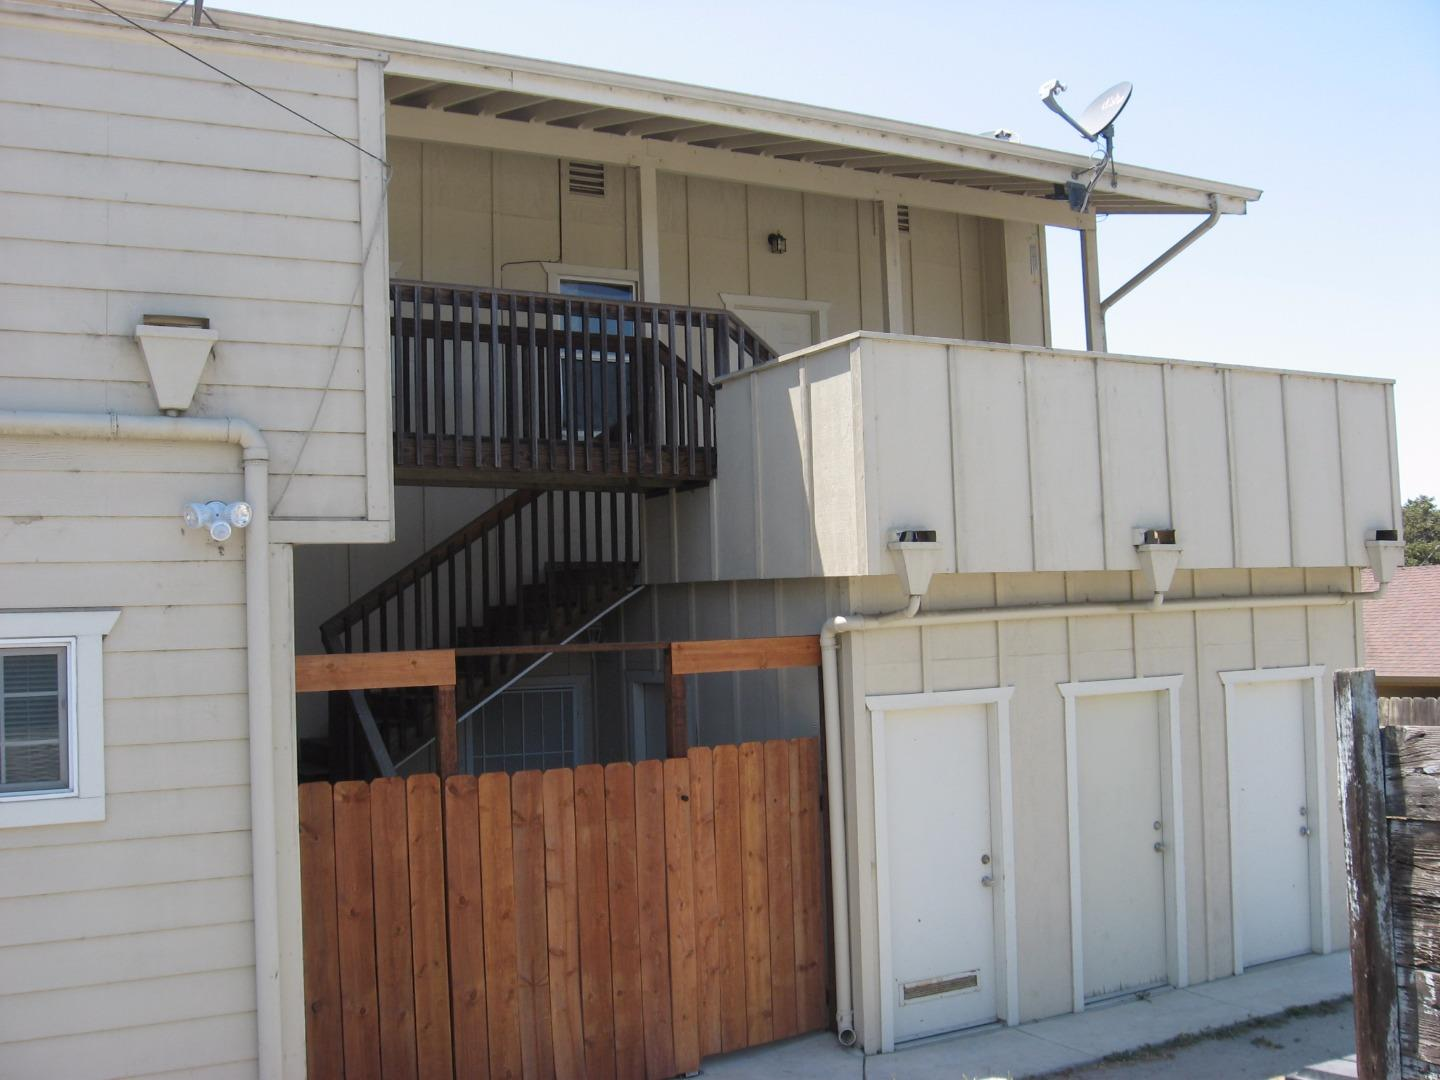 Additional photo for property listing at 373 Blohm Avenue  Aromas, California 95004 United States